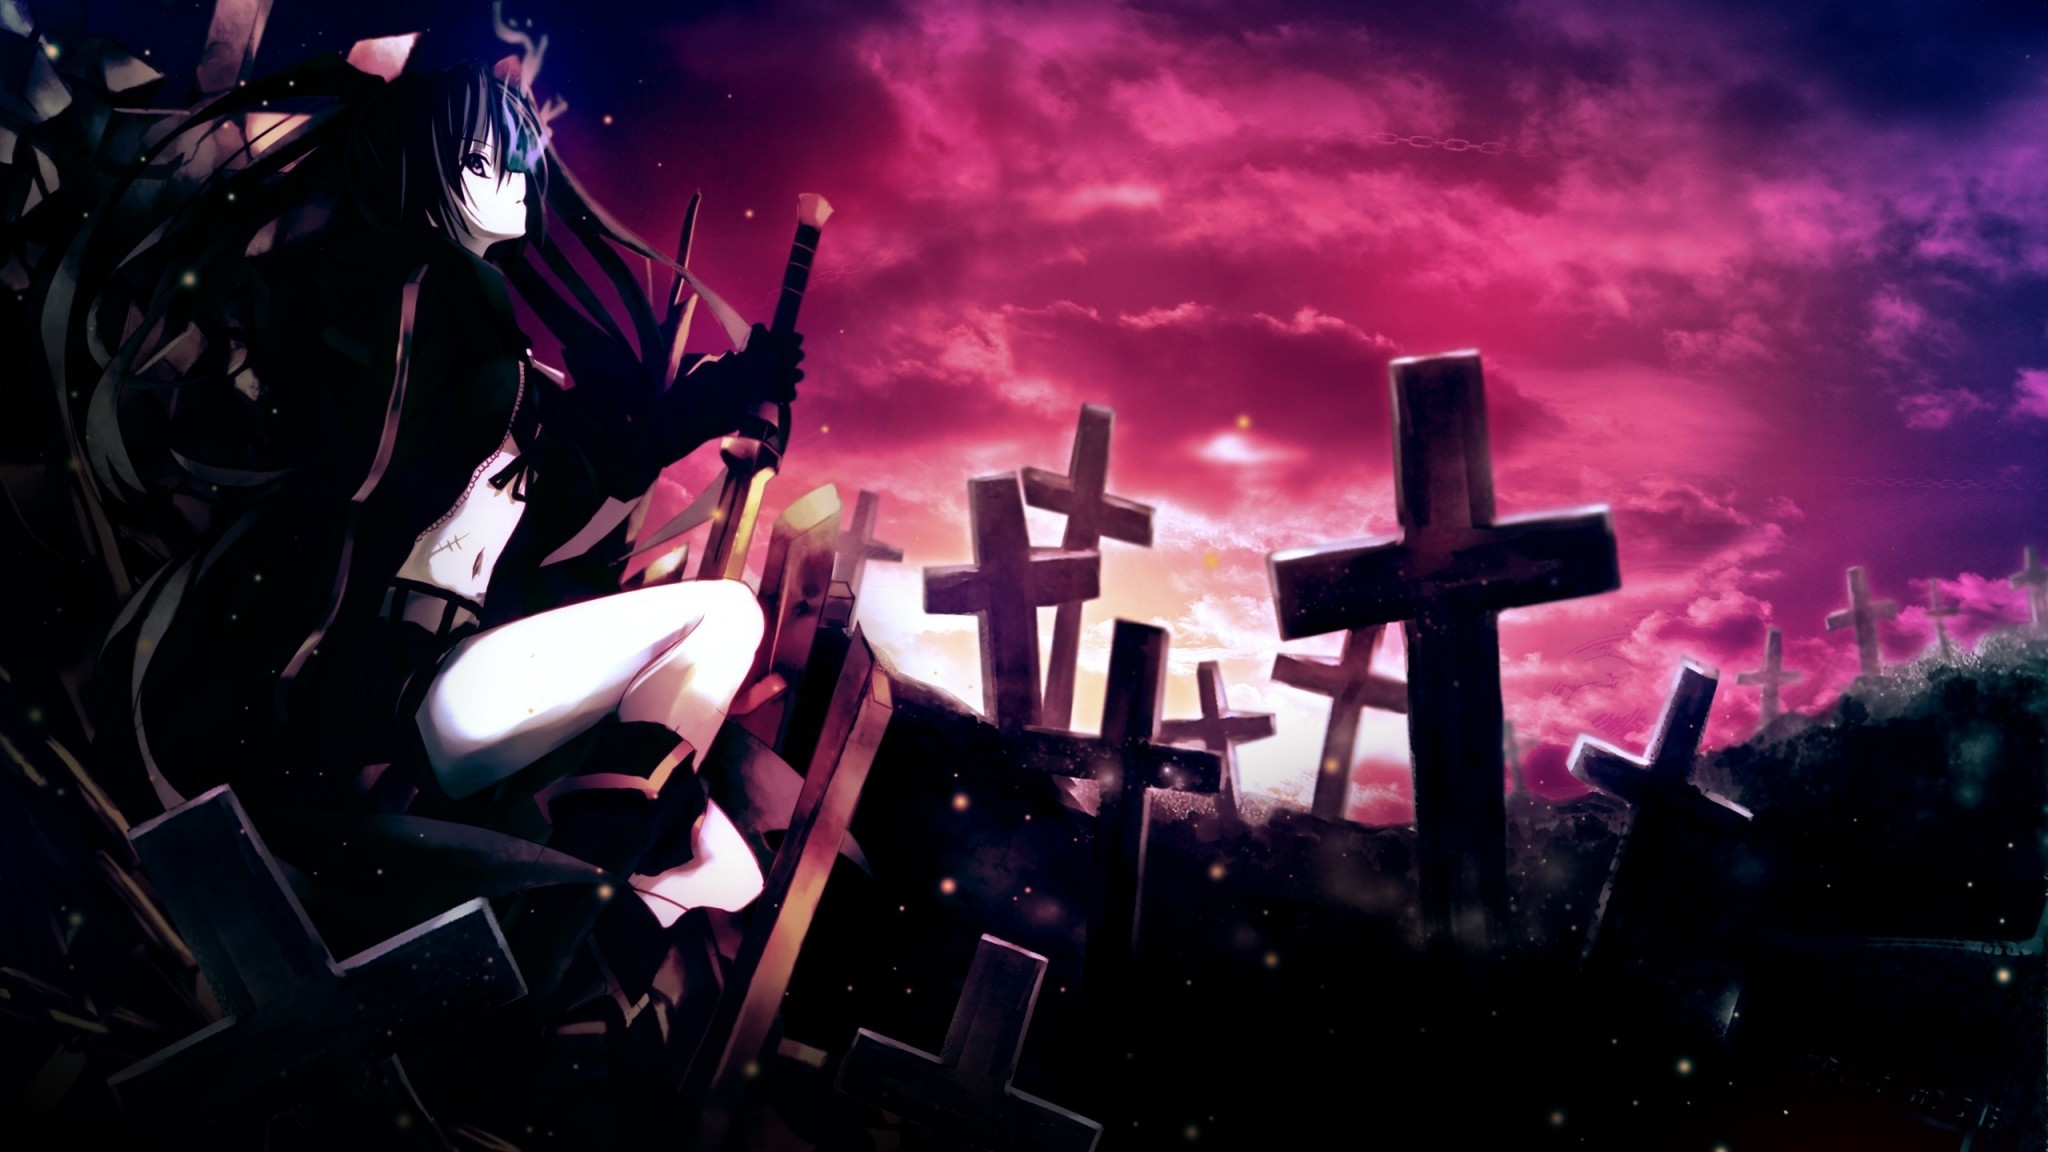 Preview Wallpaper Anime, Girl, Thoughtful, Sword, Cemetery, - 2560 X 1440 Anime - HD Wallpaper